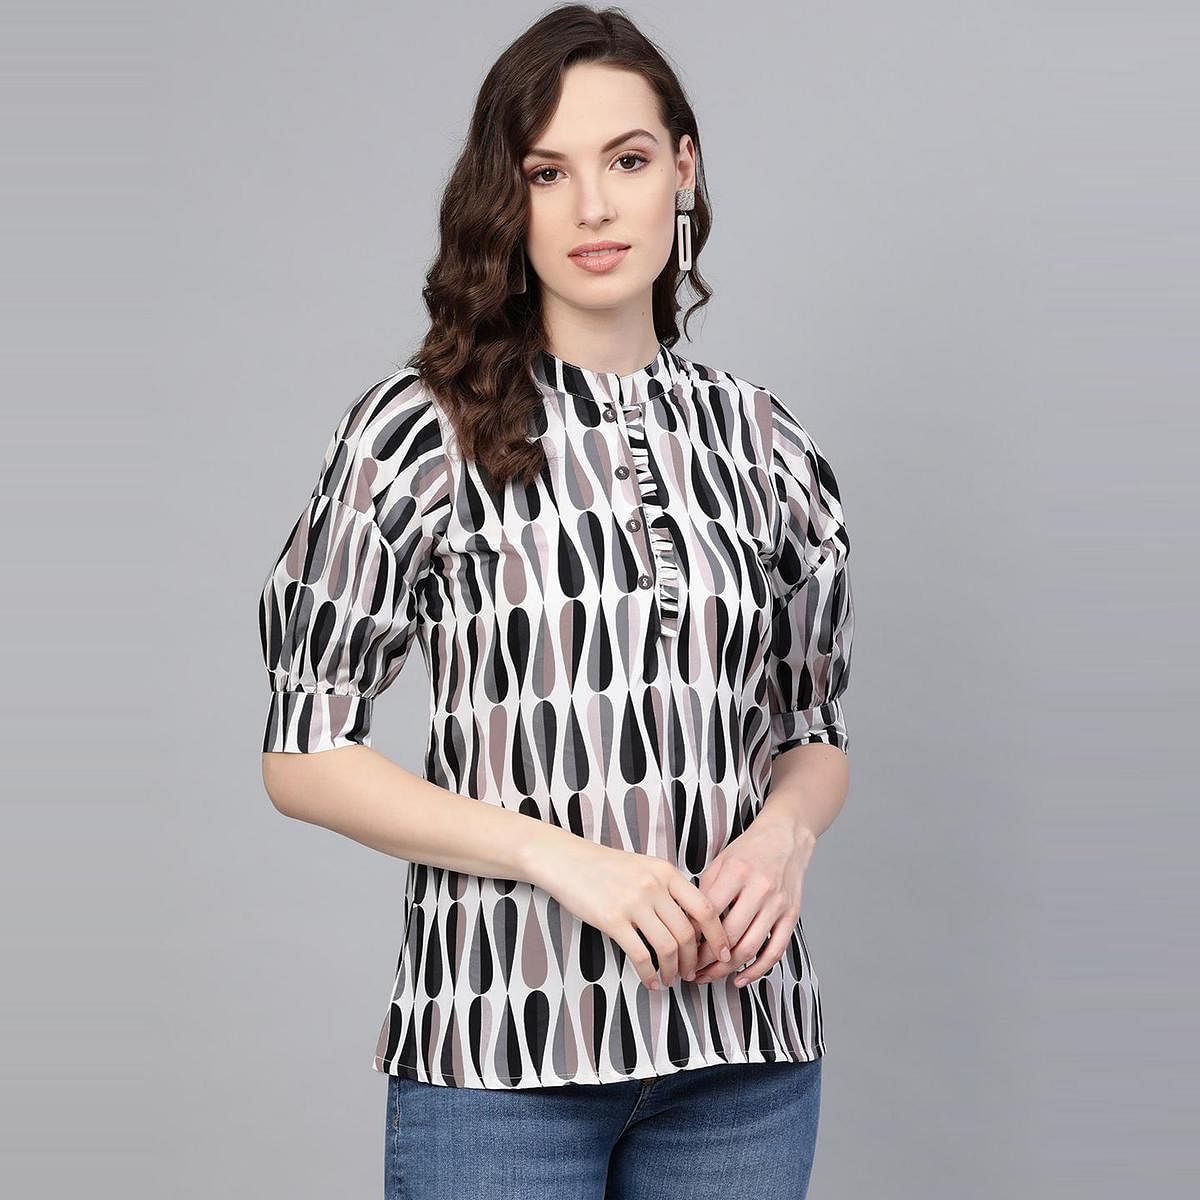 Myshka - Women's Multicolor Printed Casual Polyester Top